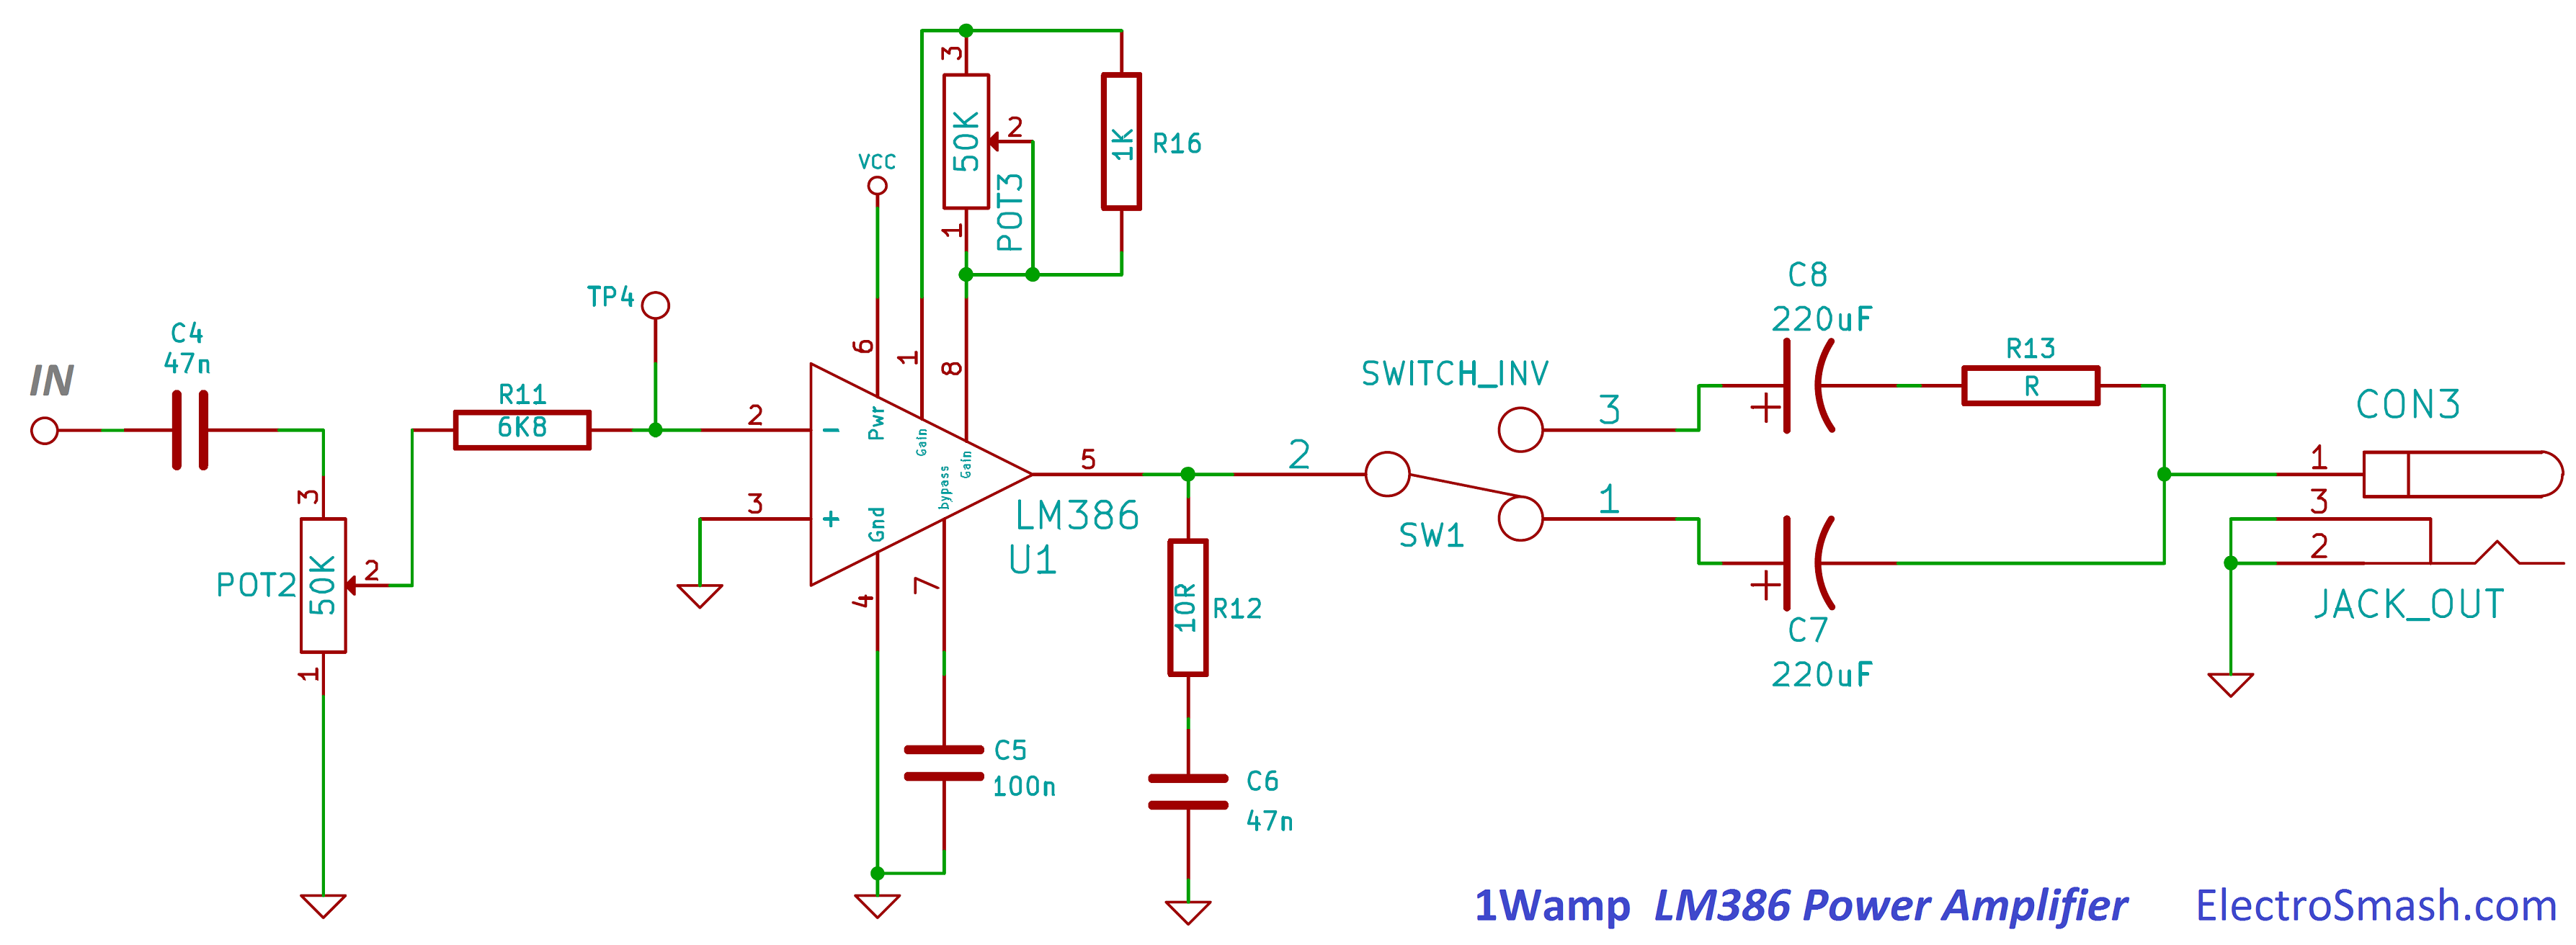 Tech Simple Amplifier Diagram Guide And Troubleshooting Of Wiring Booster Schematic Electrosmash 1wamp Electroc Guitar Circuit Amplifiers